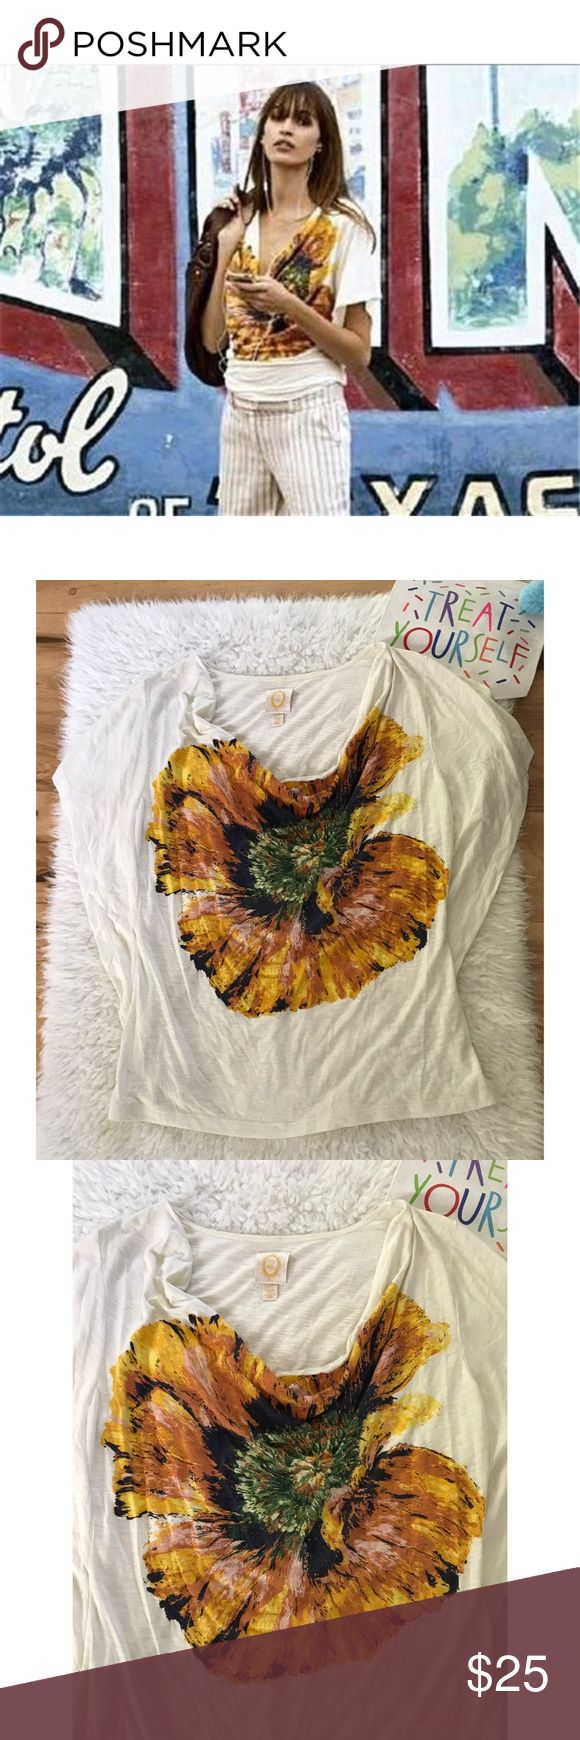 "Anthropologie Ric Rac Poppy Floral Dolman Blouse Still in great pre-loved crowl Neckline Blouse soft tee from Anthropologie in size large. Dolman sleeves. No major flaws. Measure about 24"" sleeves, 18"" pit to pit. ❌No trades or modeling. Always open to reasonable offers. Bundle and save 15%. Thank you‼️ Anthropologie Tops Tees - Short Sleeve"